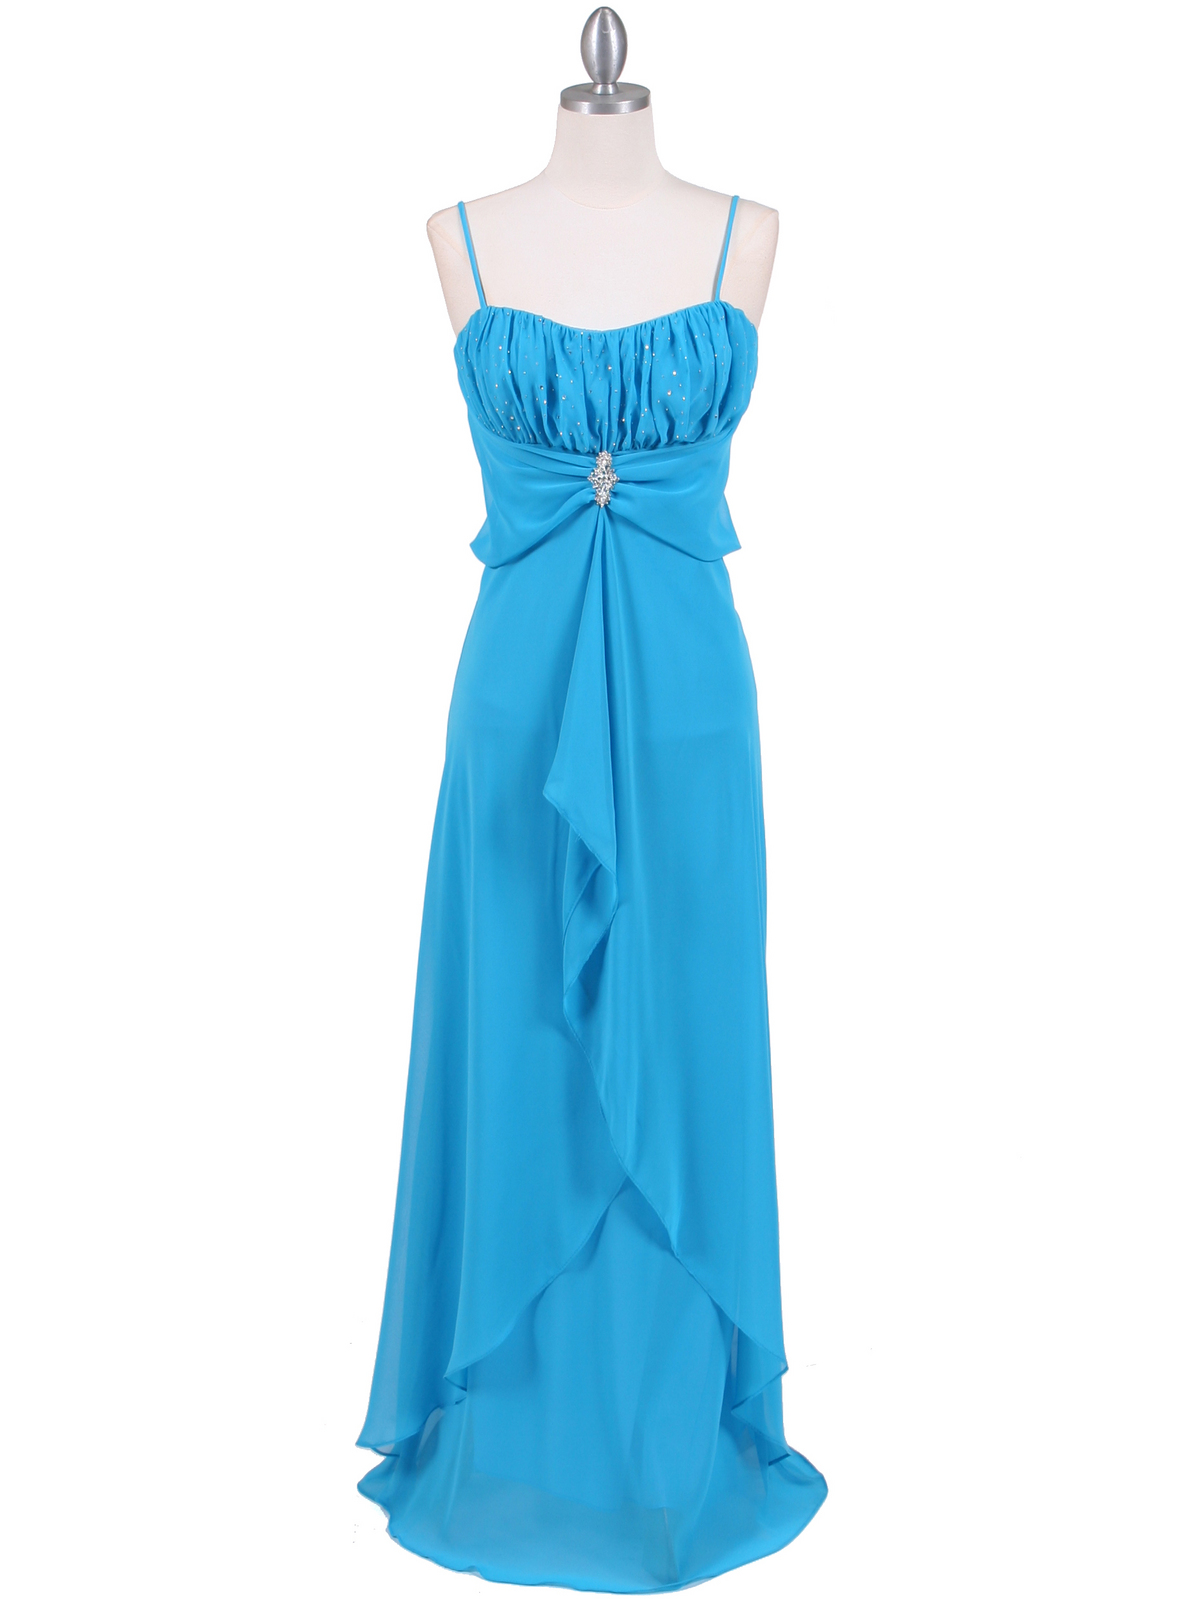 Turquoise Chiffon Evening Dress from Sung Boutique Los Angeles,